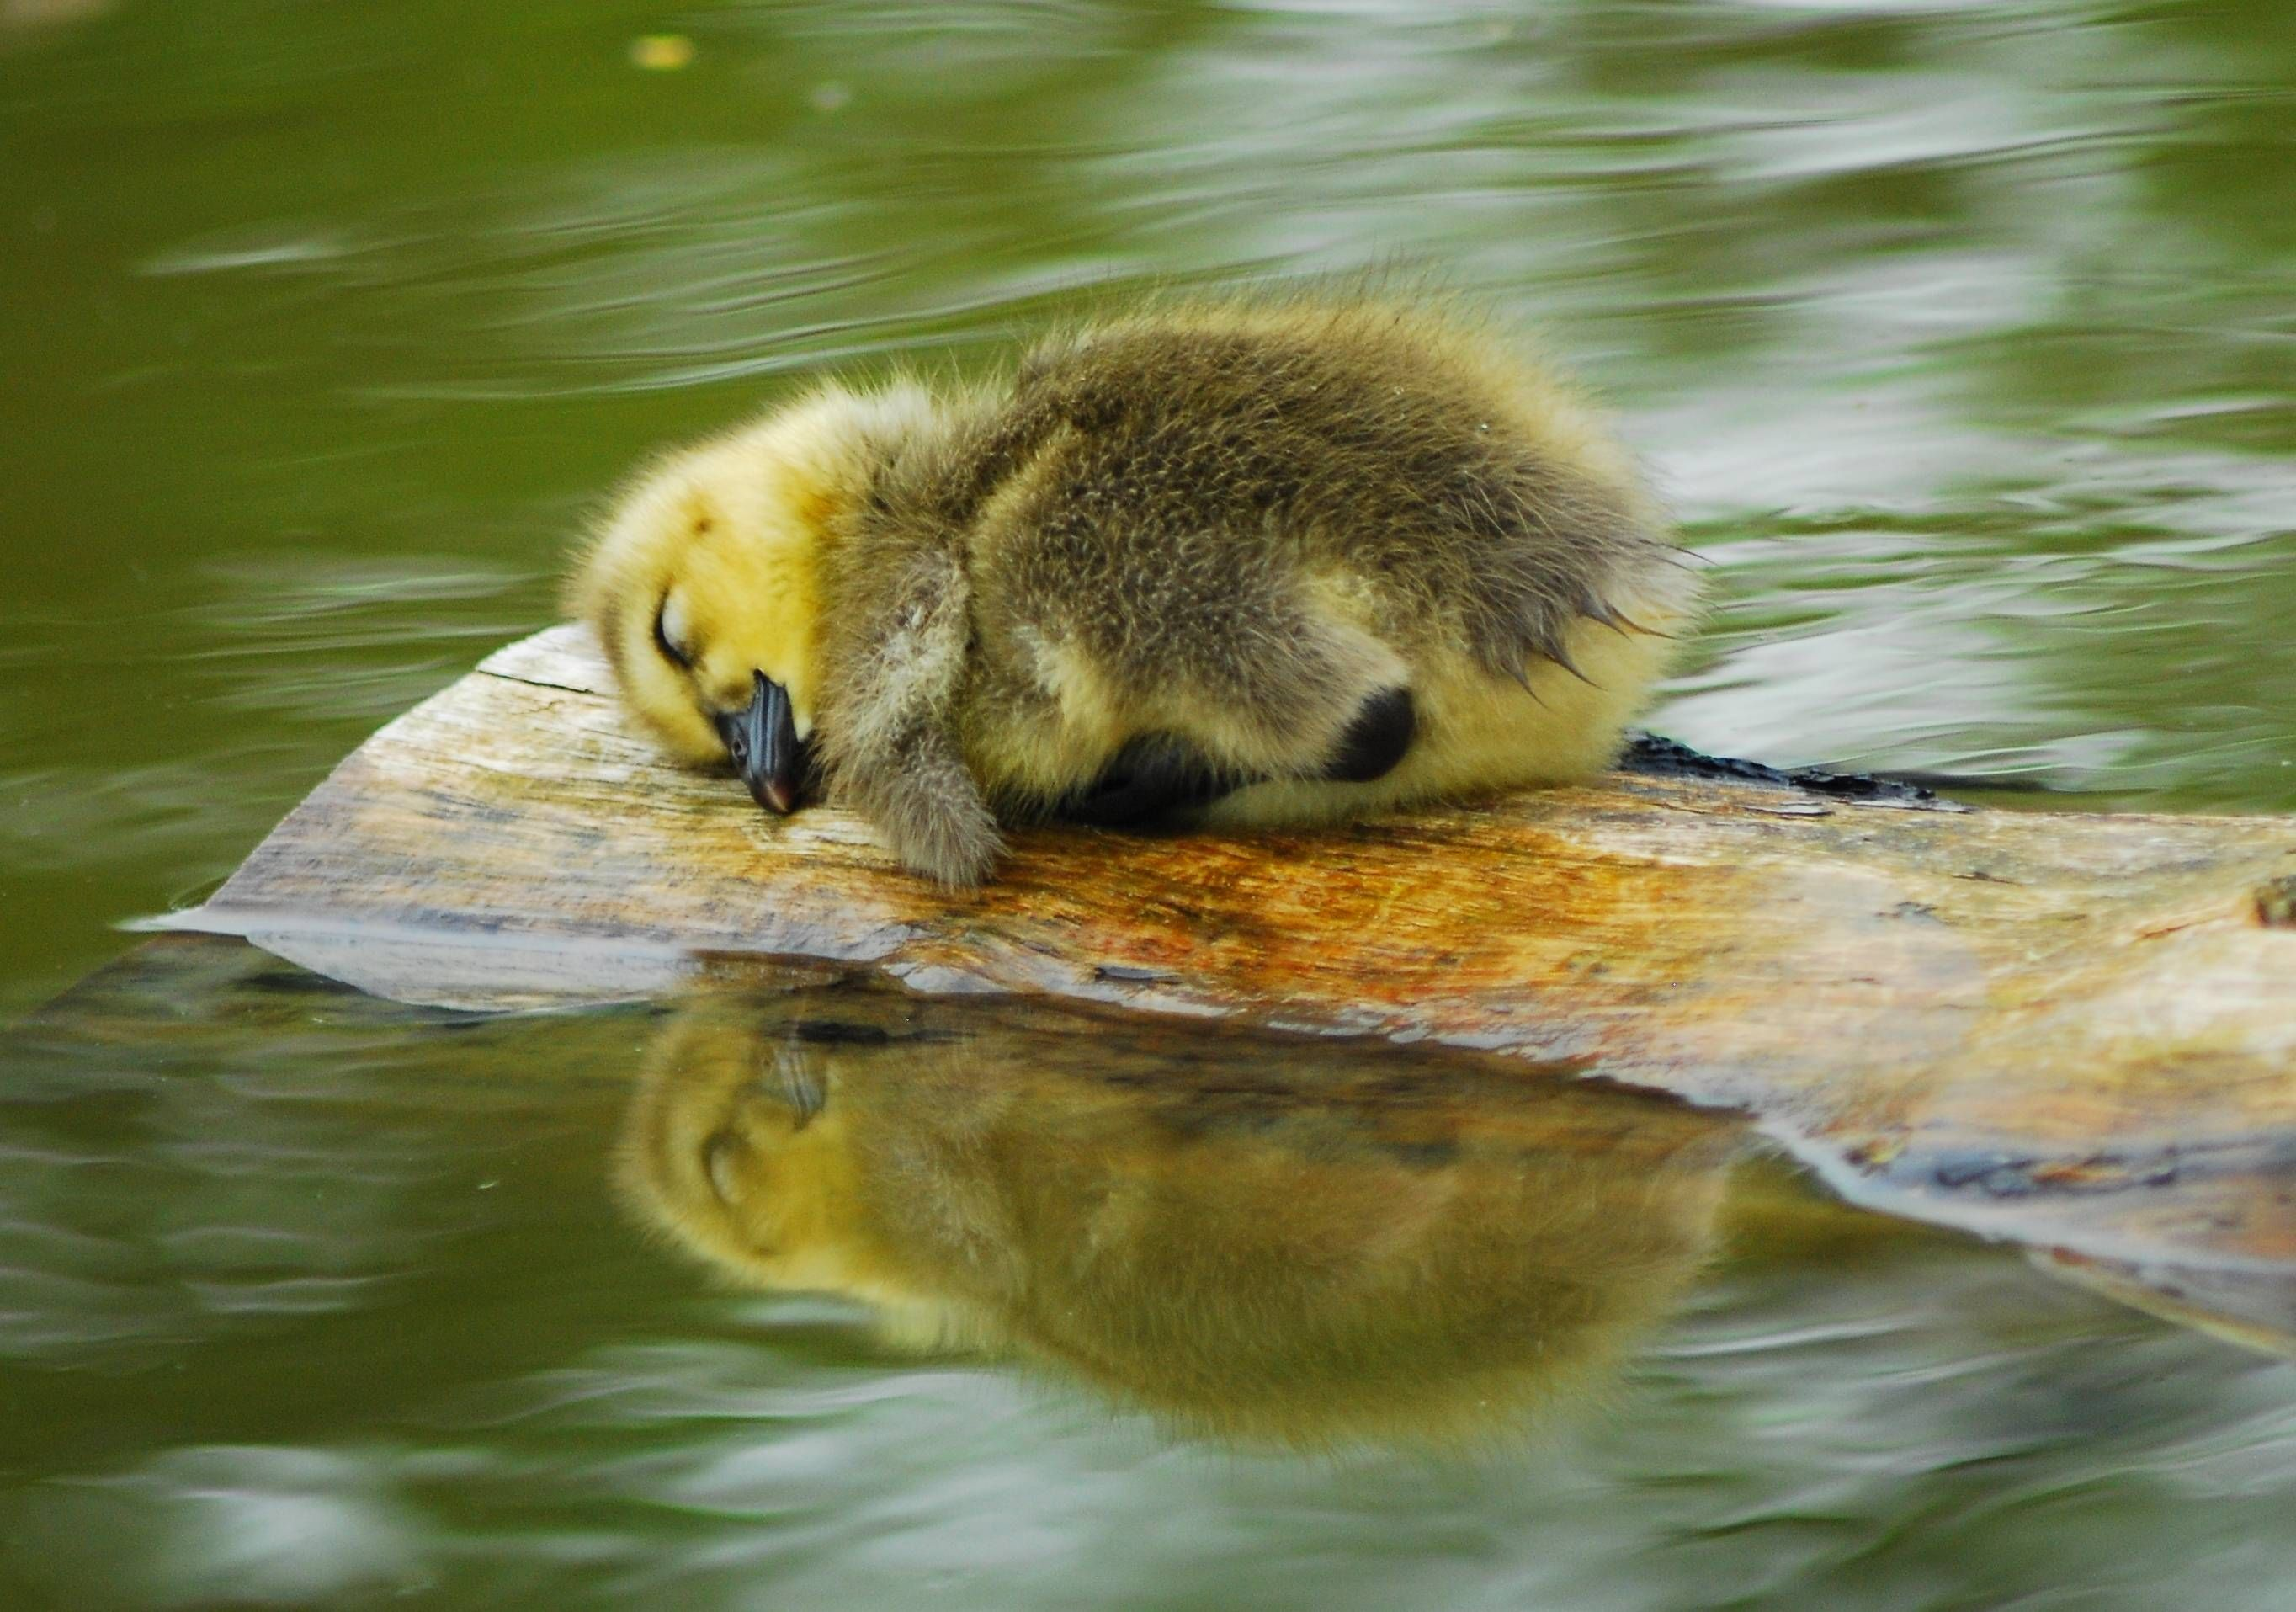 Sleepy duckling Cute animals, Animals, Cute animal pictures